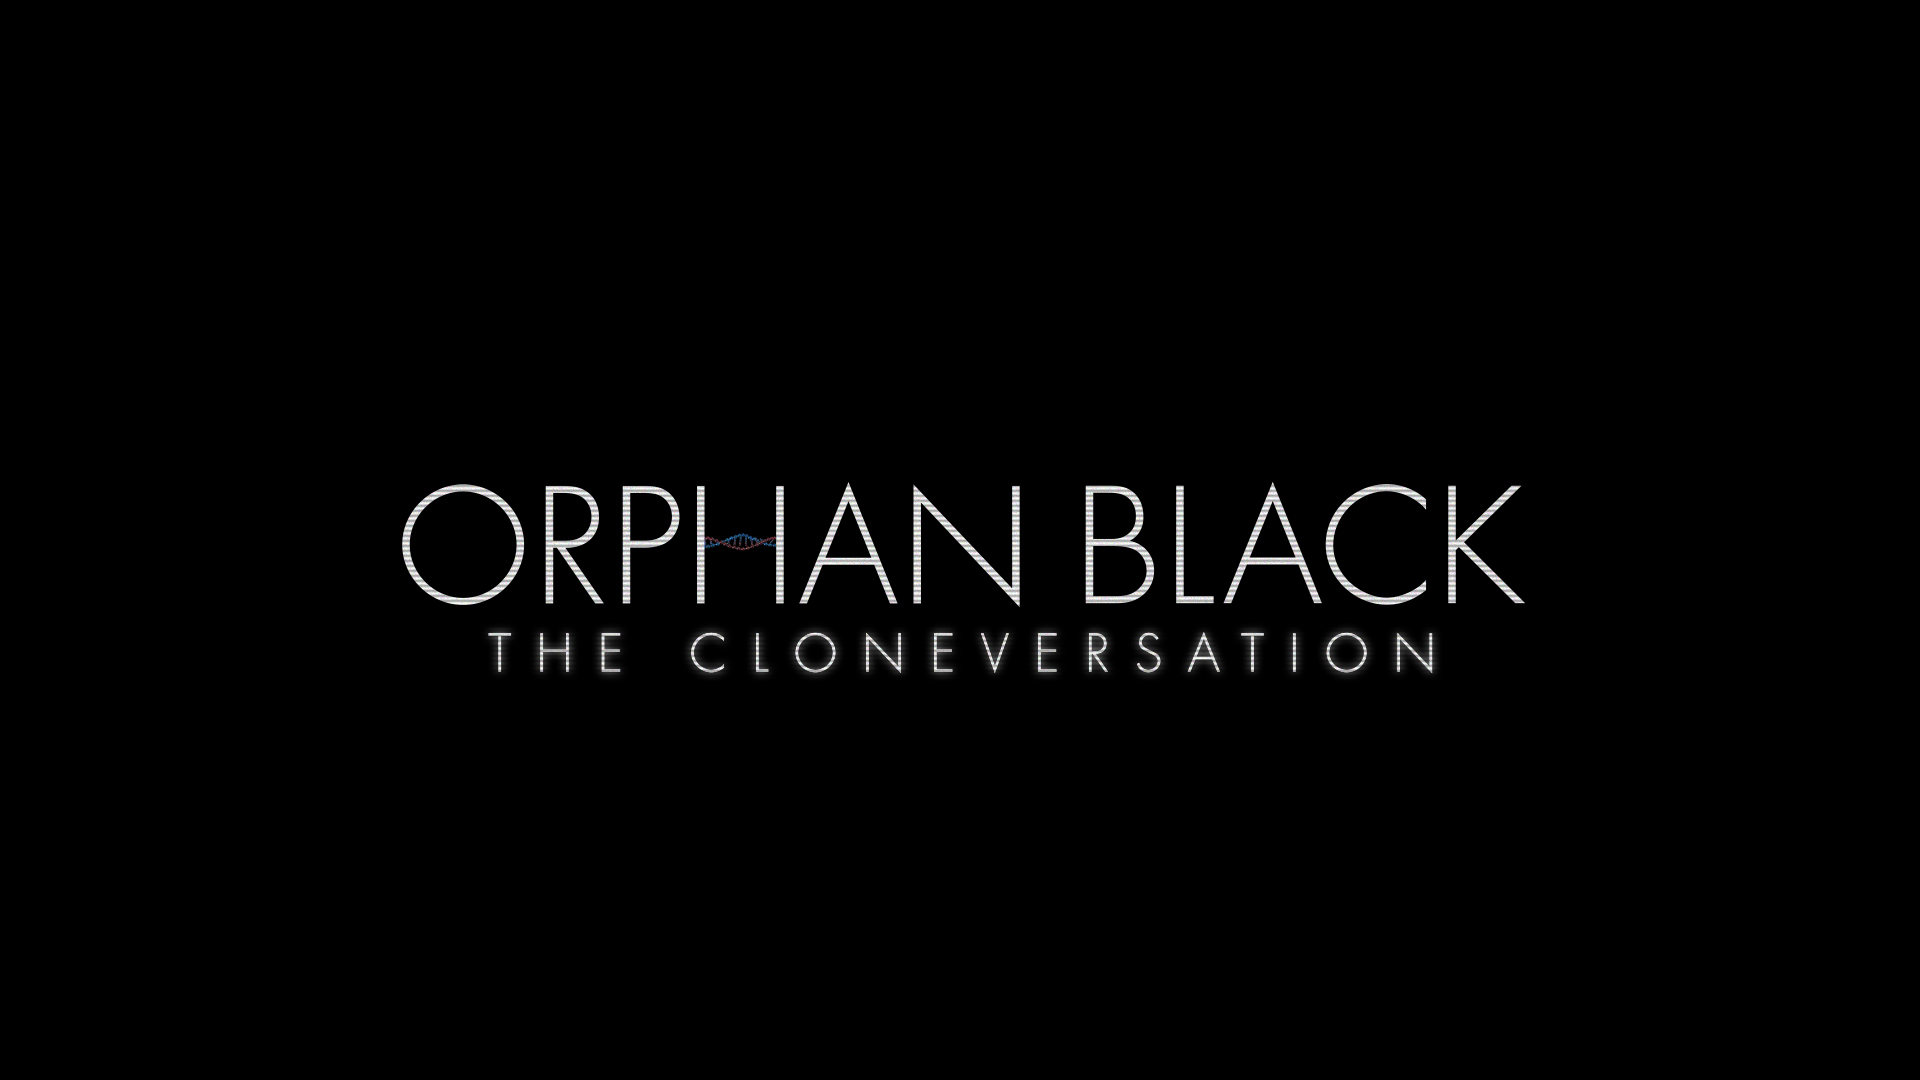 Orphan Black The Cloneversation 2014 Imdb